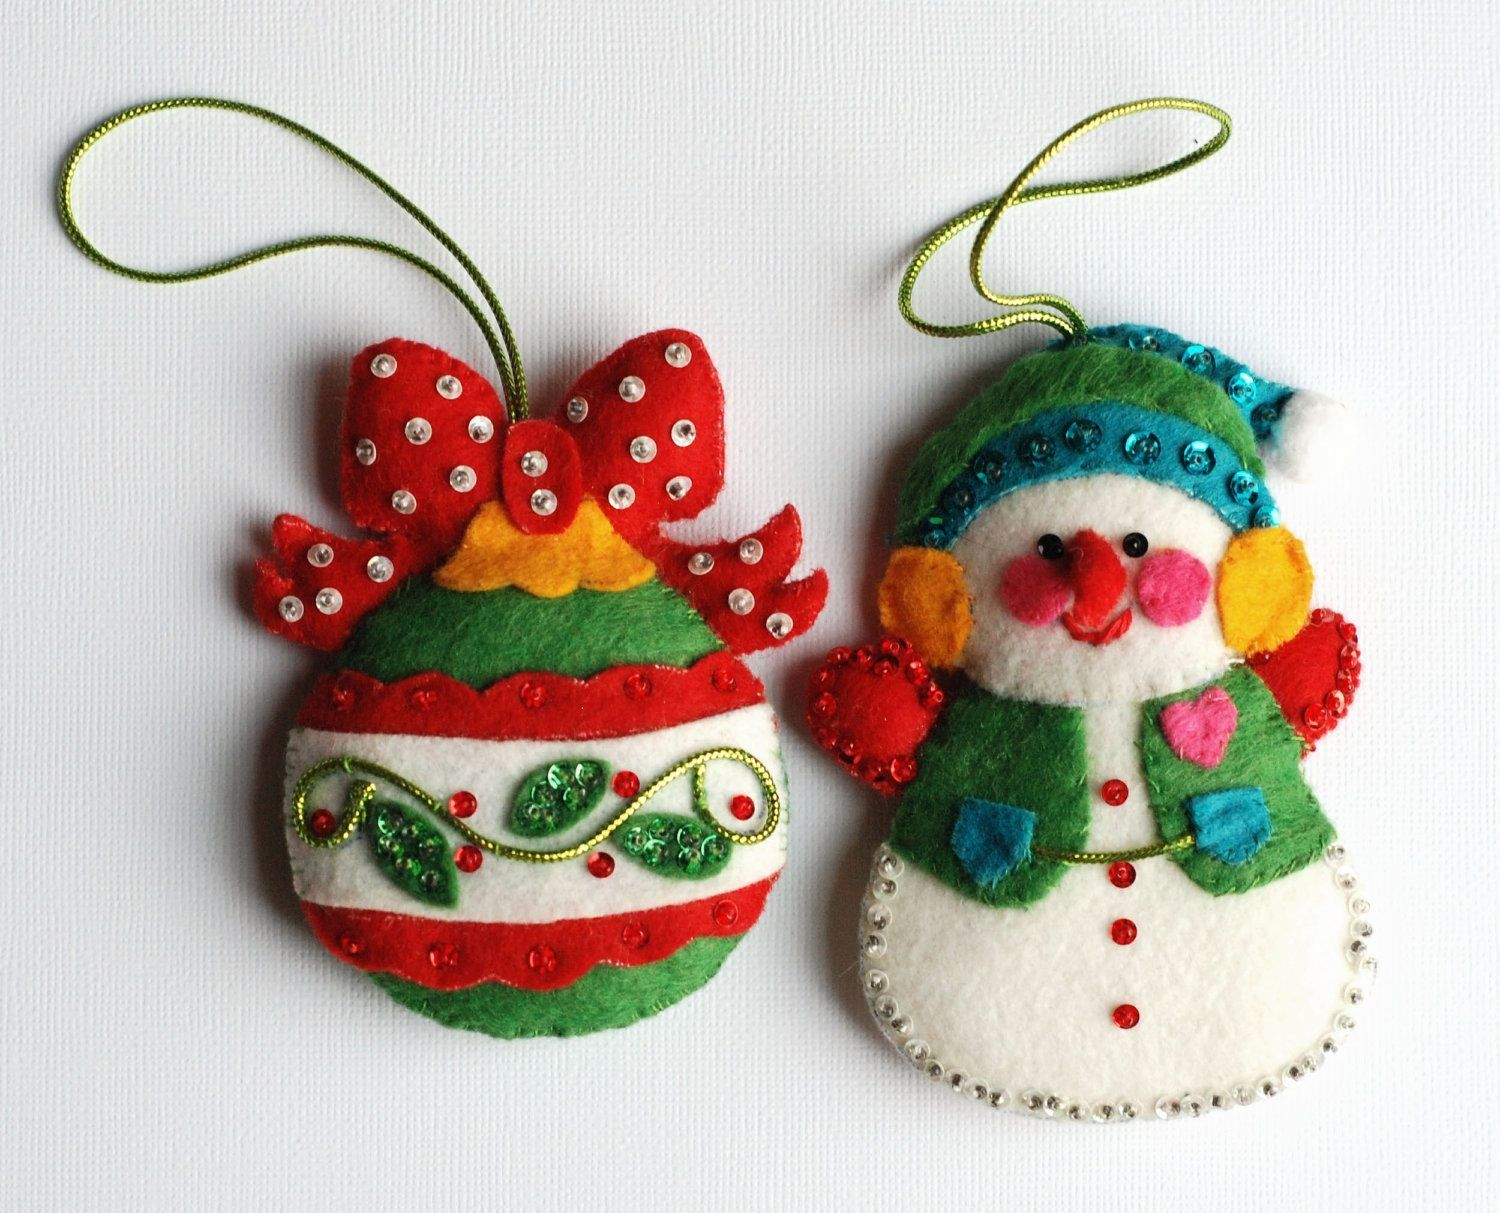 Vintage Felt Christmas Ornaments With Sequins Felt Ornaments In